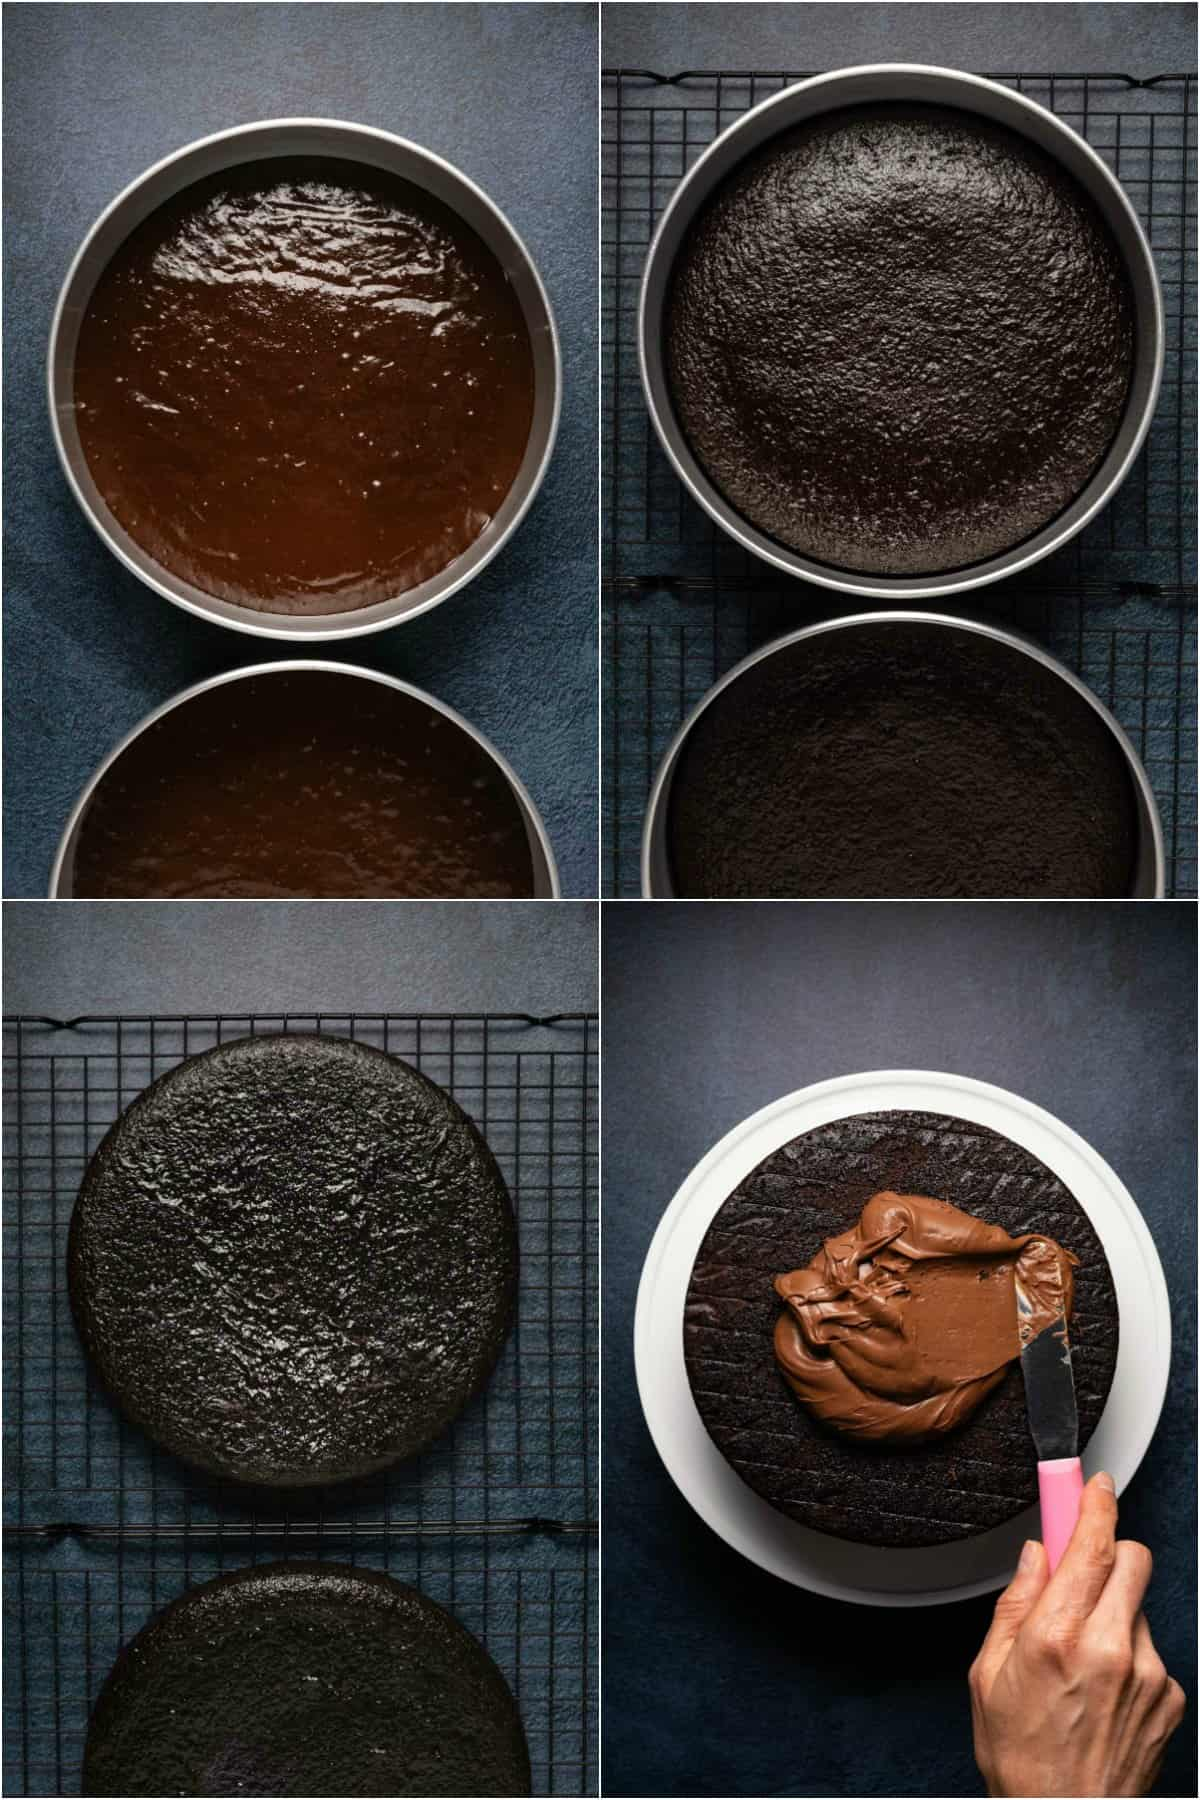 Step by step process photo collage of making a vegan gluten free chocolate cake.